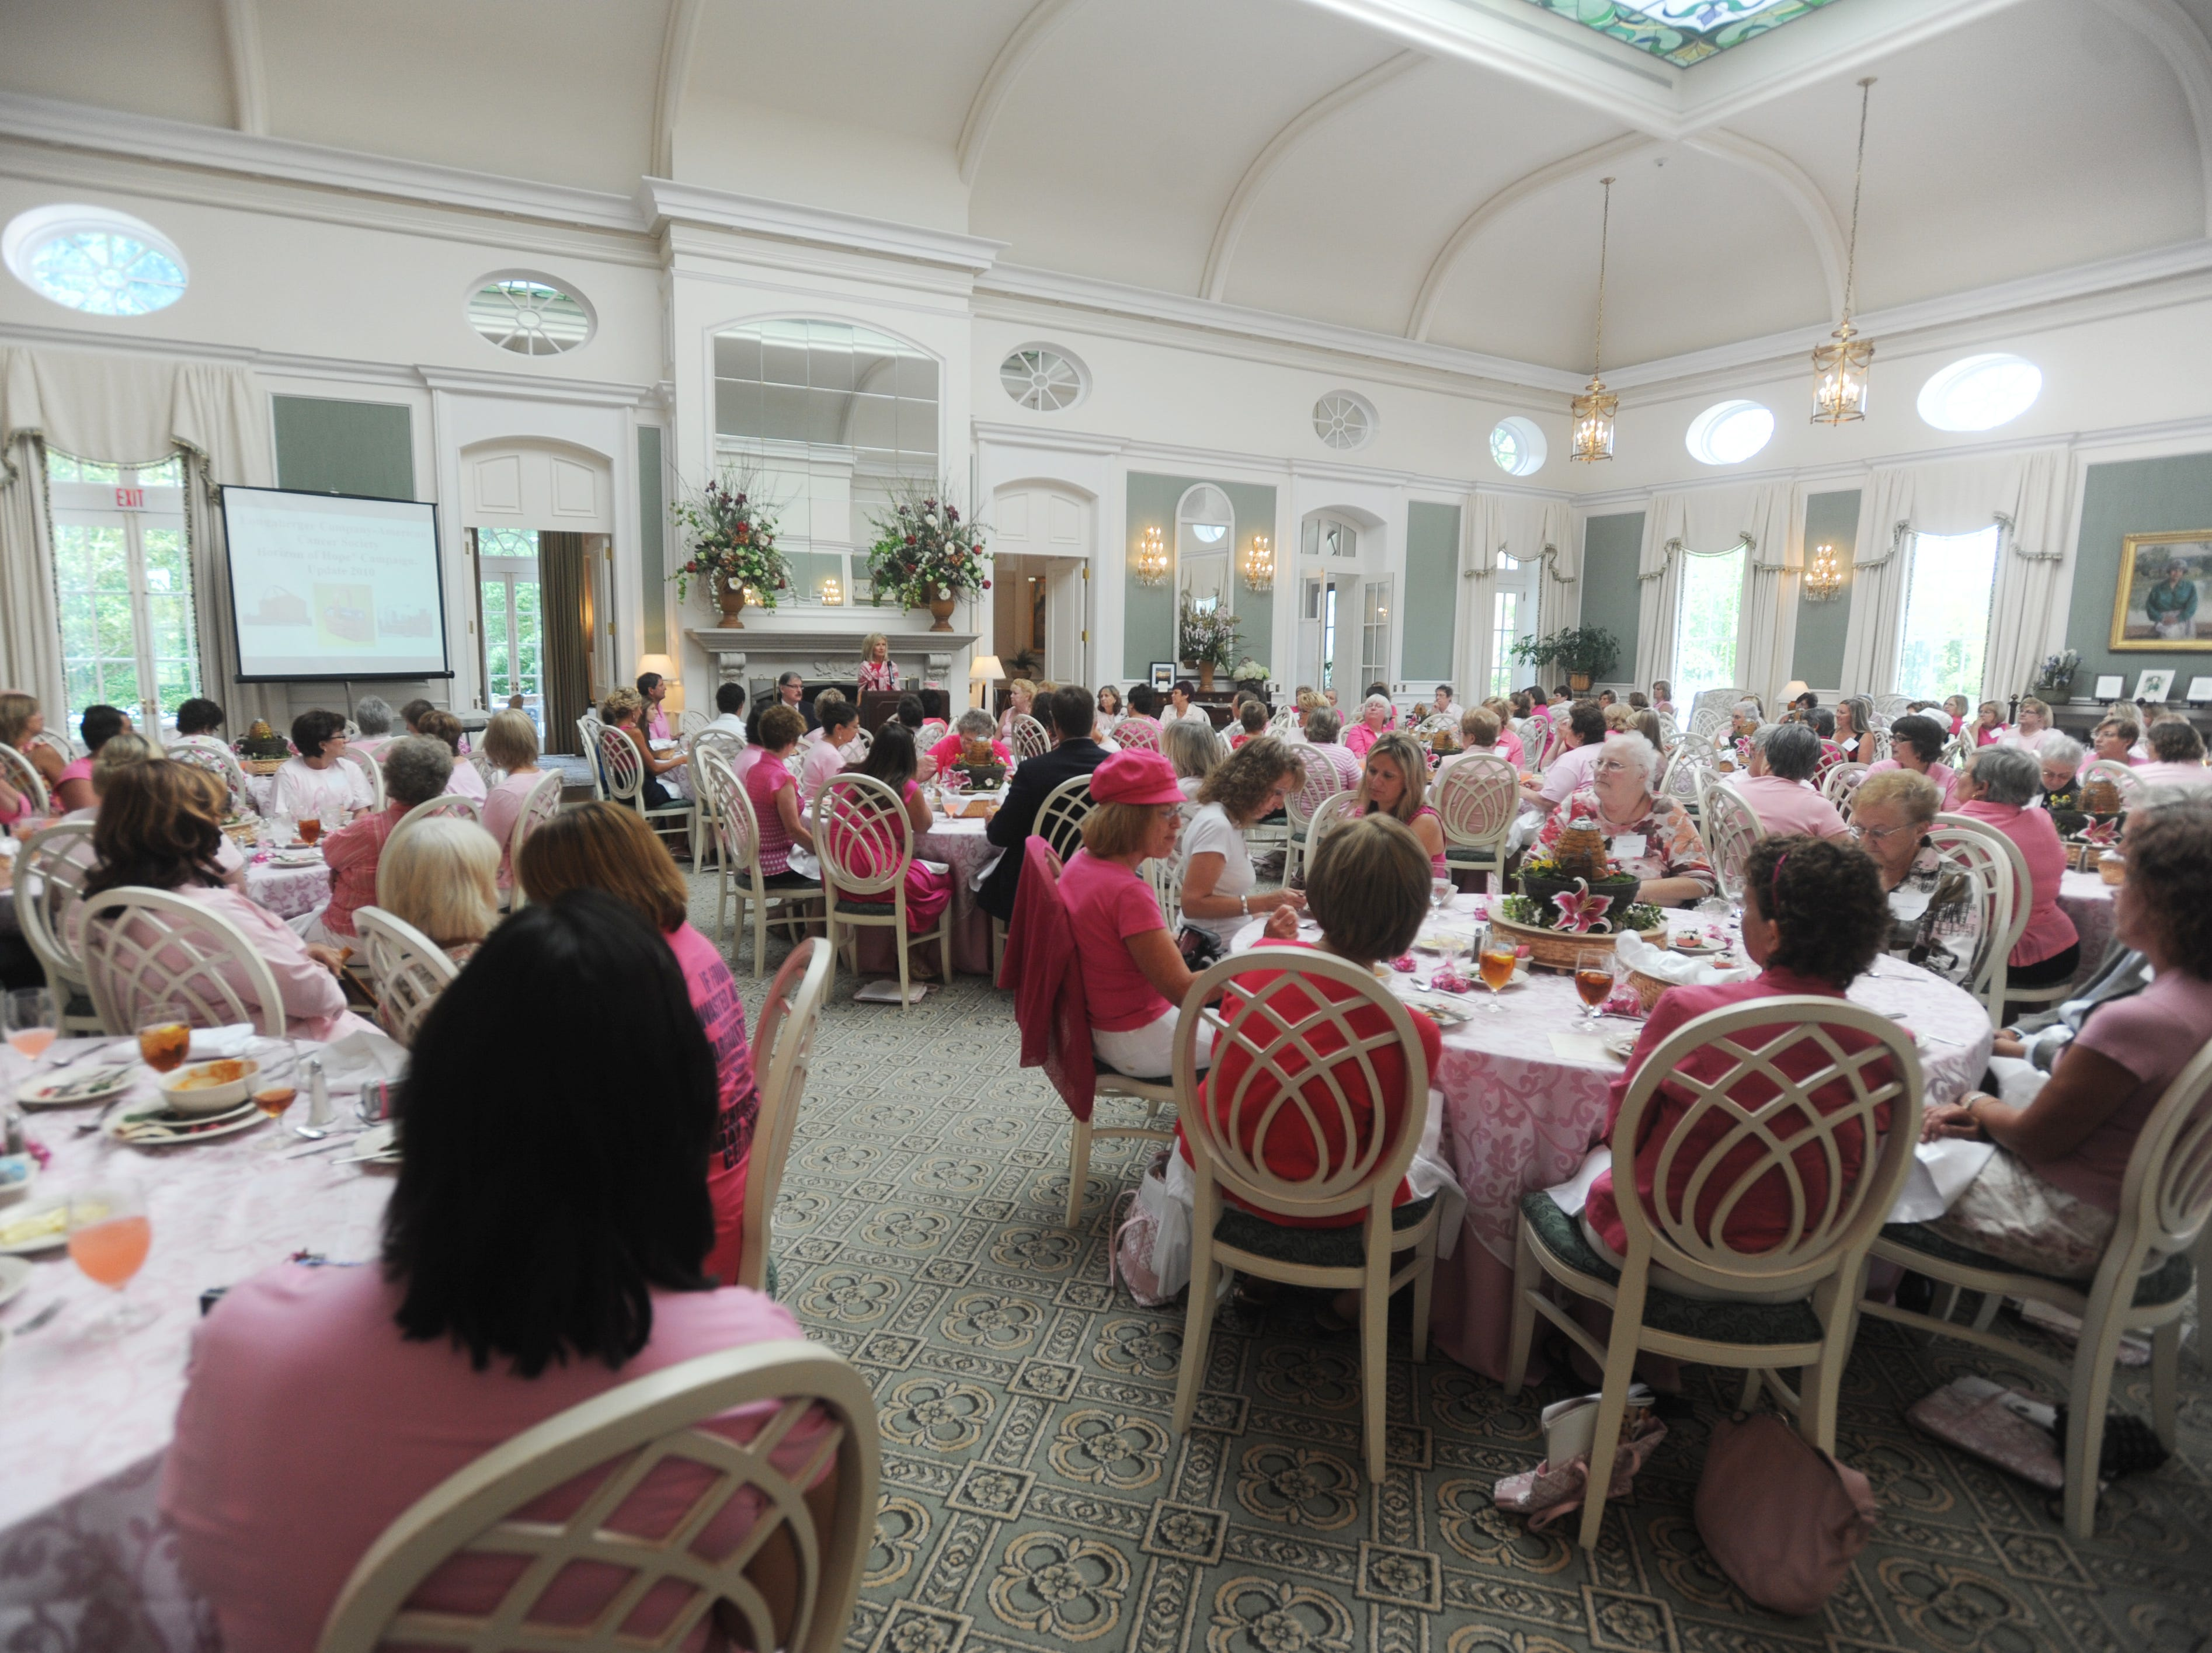 Longaberger CEO Tami Longaberger welcomes attendees to the luncheon, which kicked off the company's Pink Week, part of Longaberger's Horizon of Hope fundraiser.